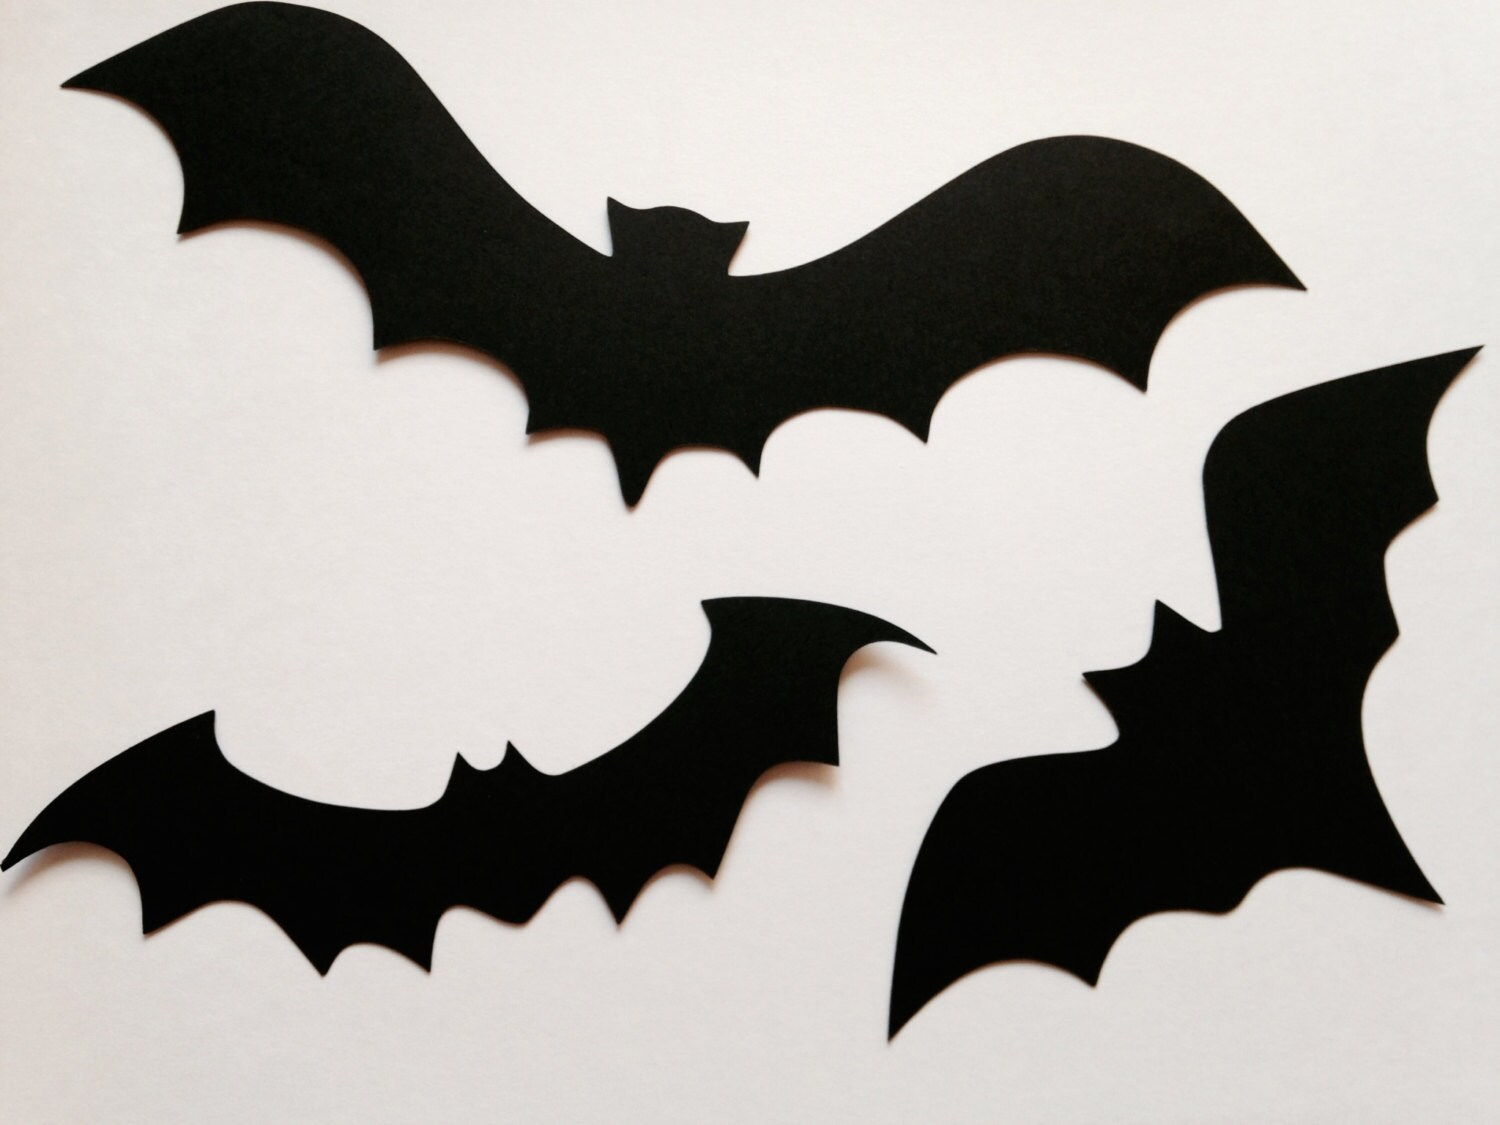 Paper Bat Cutouts 30 Pack Halloween Decor Easy Diy